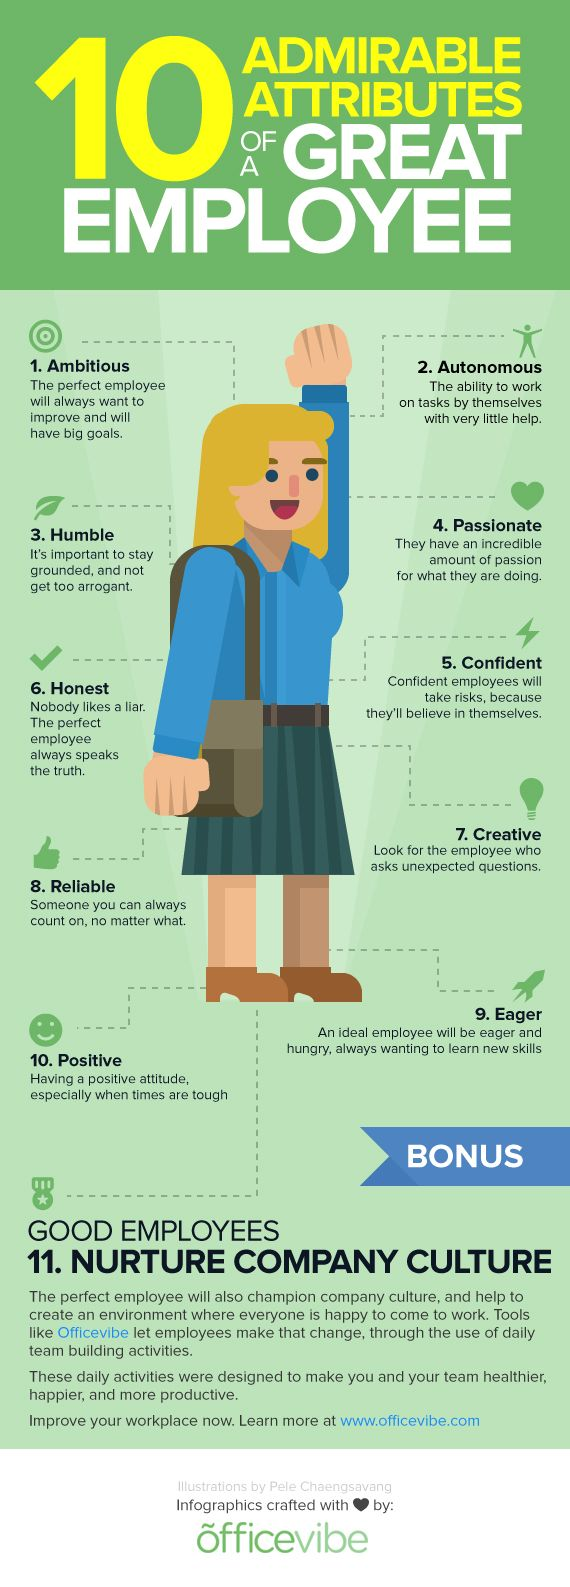 10 Admirable Attributes of a Great Employee [INFOGRAPHIC]